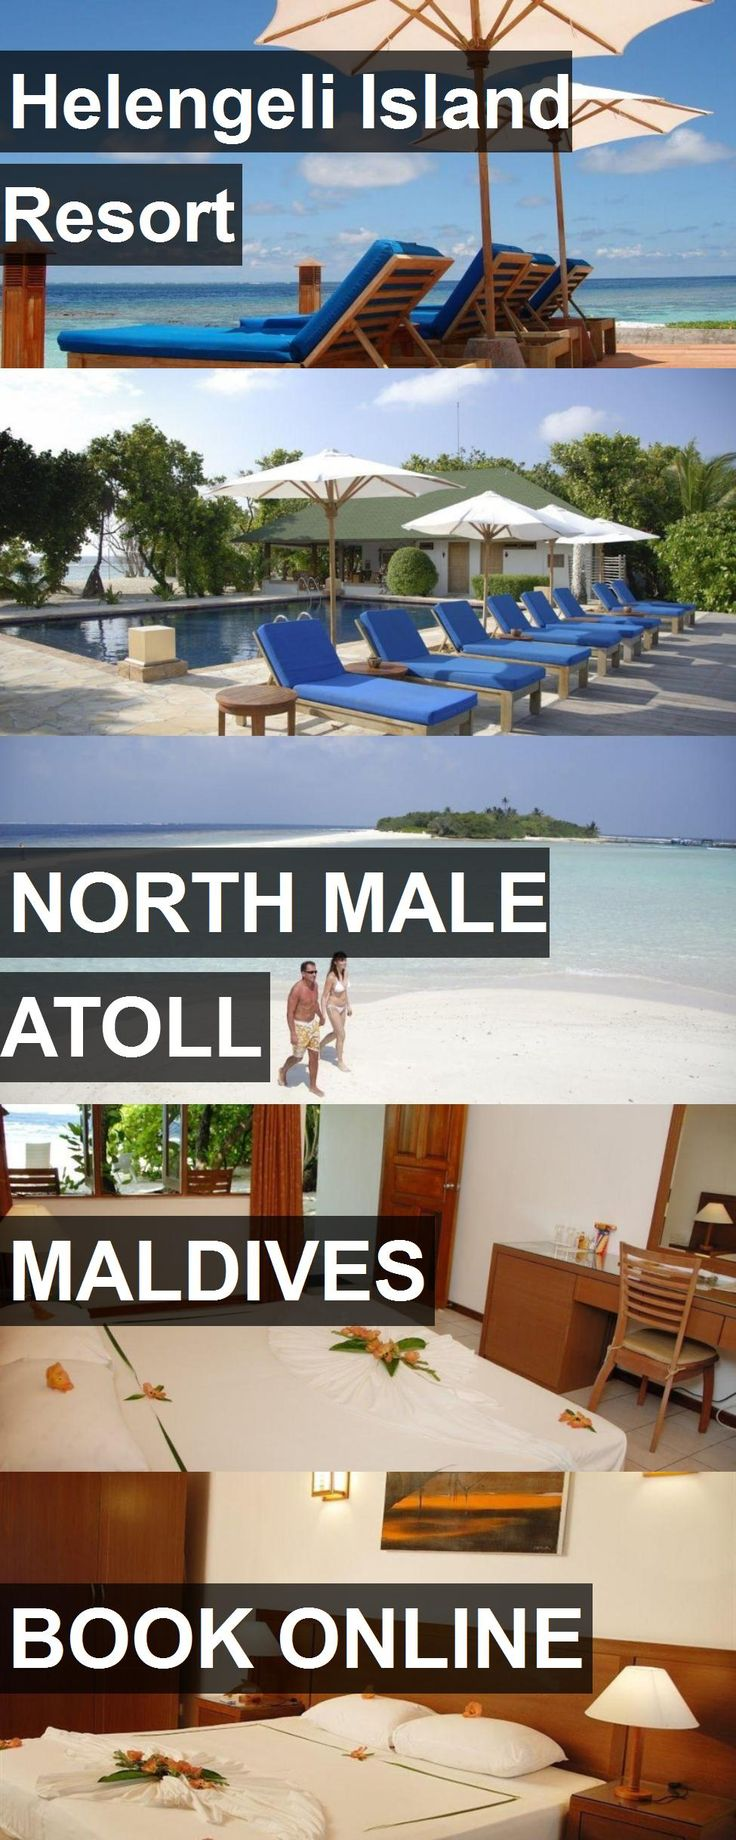 Hotel Helengeli Island Resort in North Male Atoll, Maldives. For more information, photos, reviews and best prices please follow the link. #Maldives #NorthMaleAtoll #travel #vacation #hotel